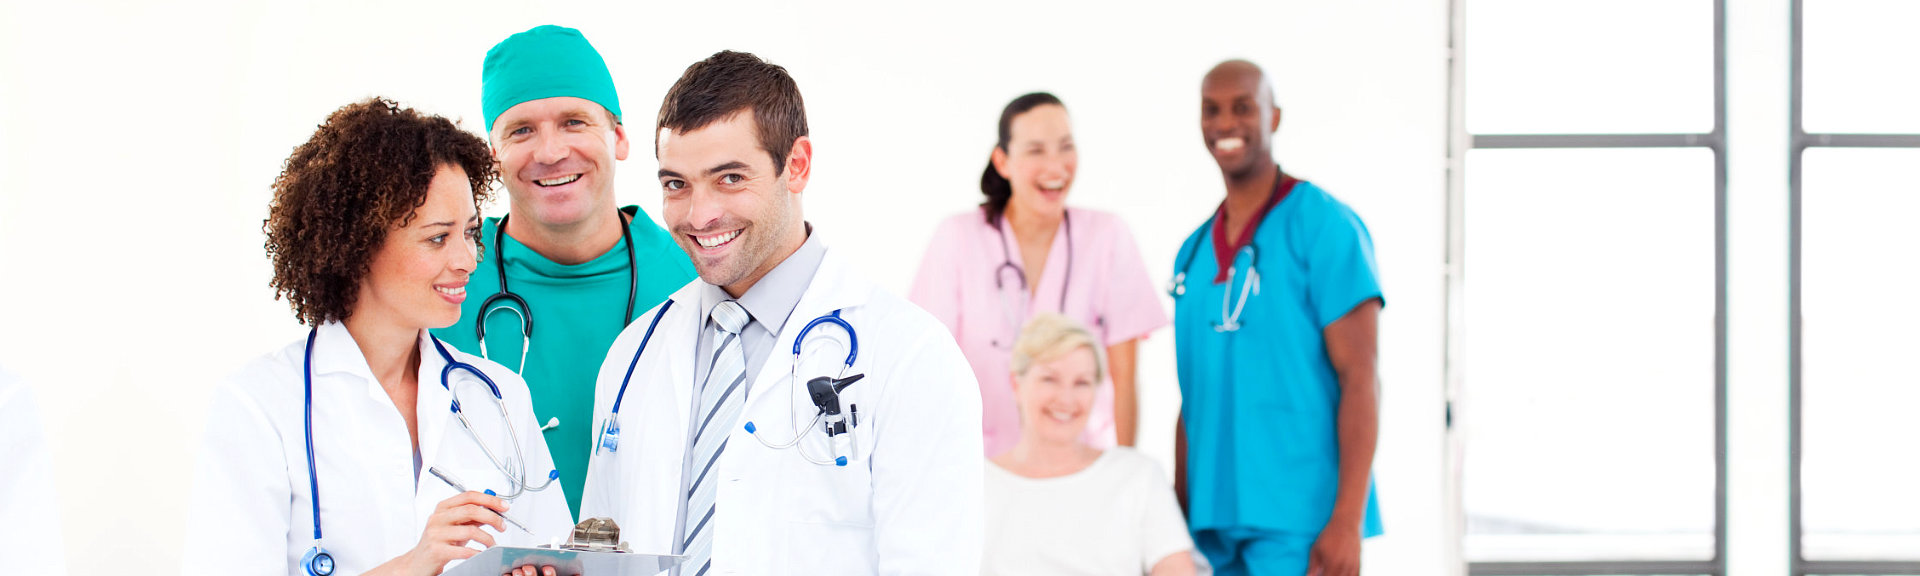 Smiling medical staff